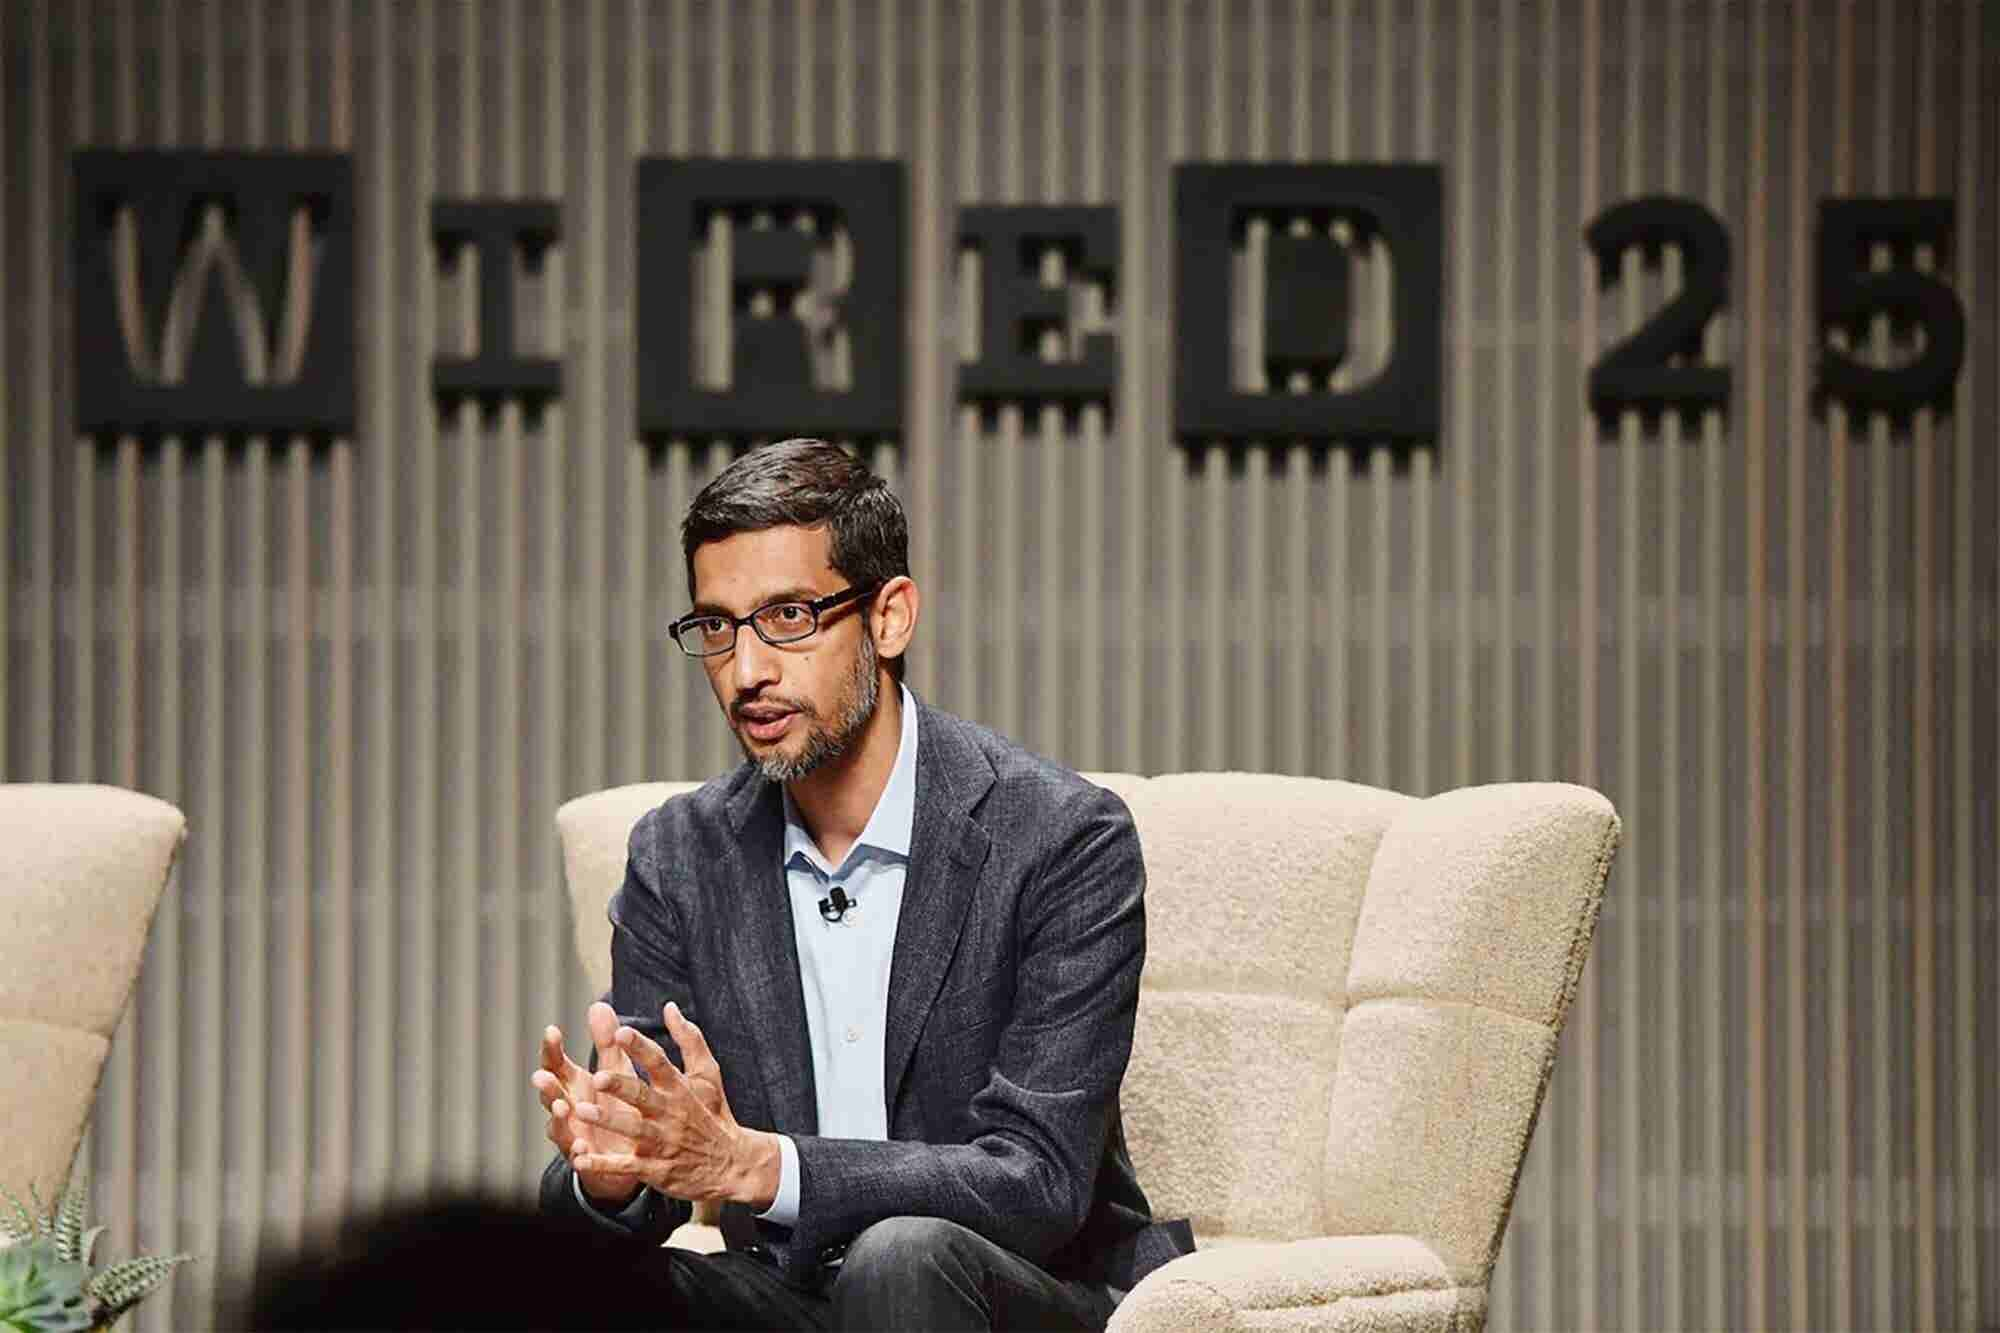 Google CEO Sundar Pichai Confirms Censored China Search Engine